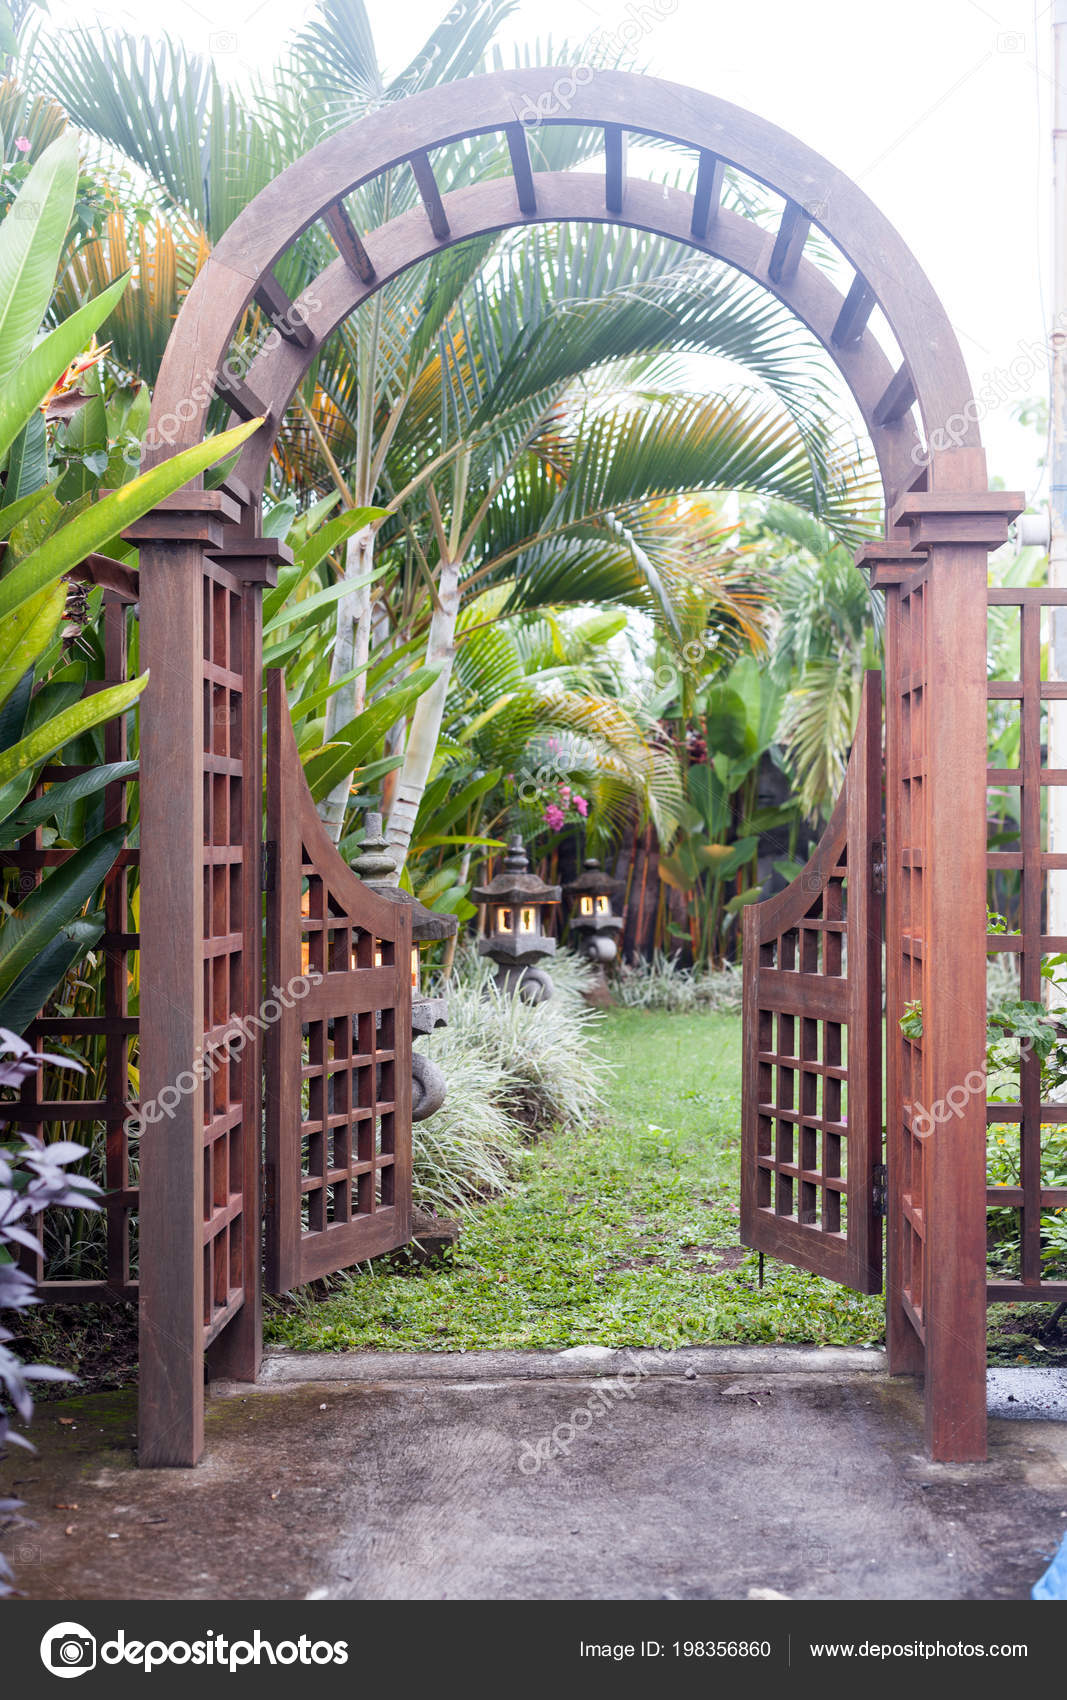 Wooden Arbor Gate Garden Wooden Arched Entrance Backyard Stock